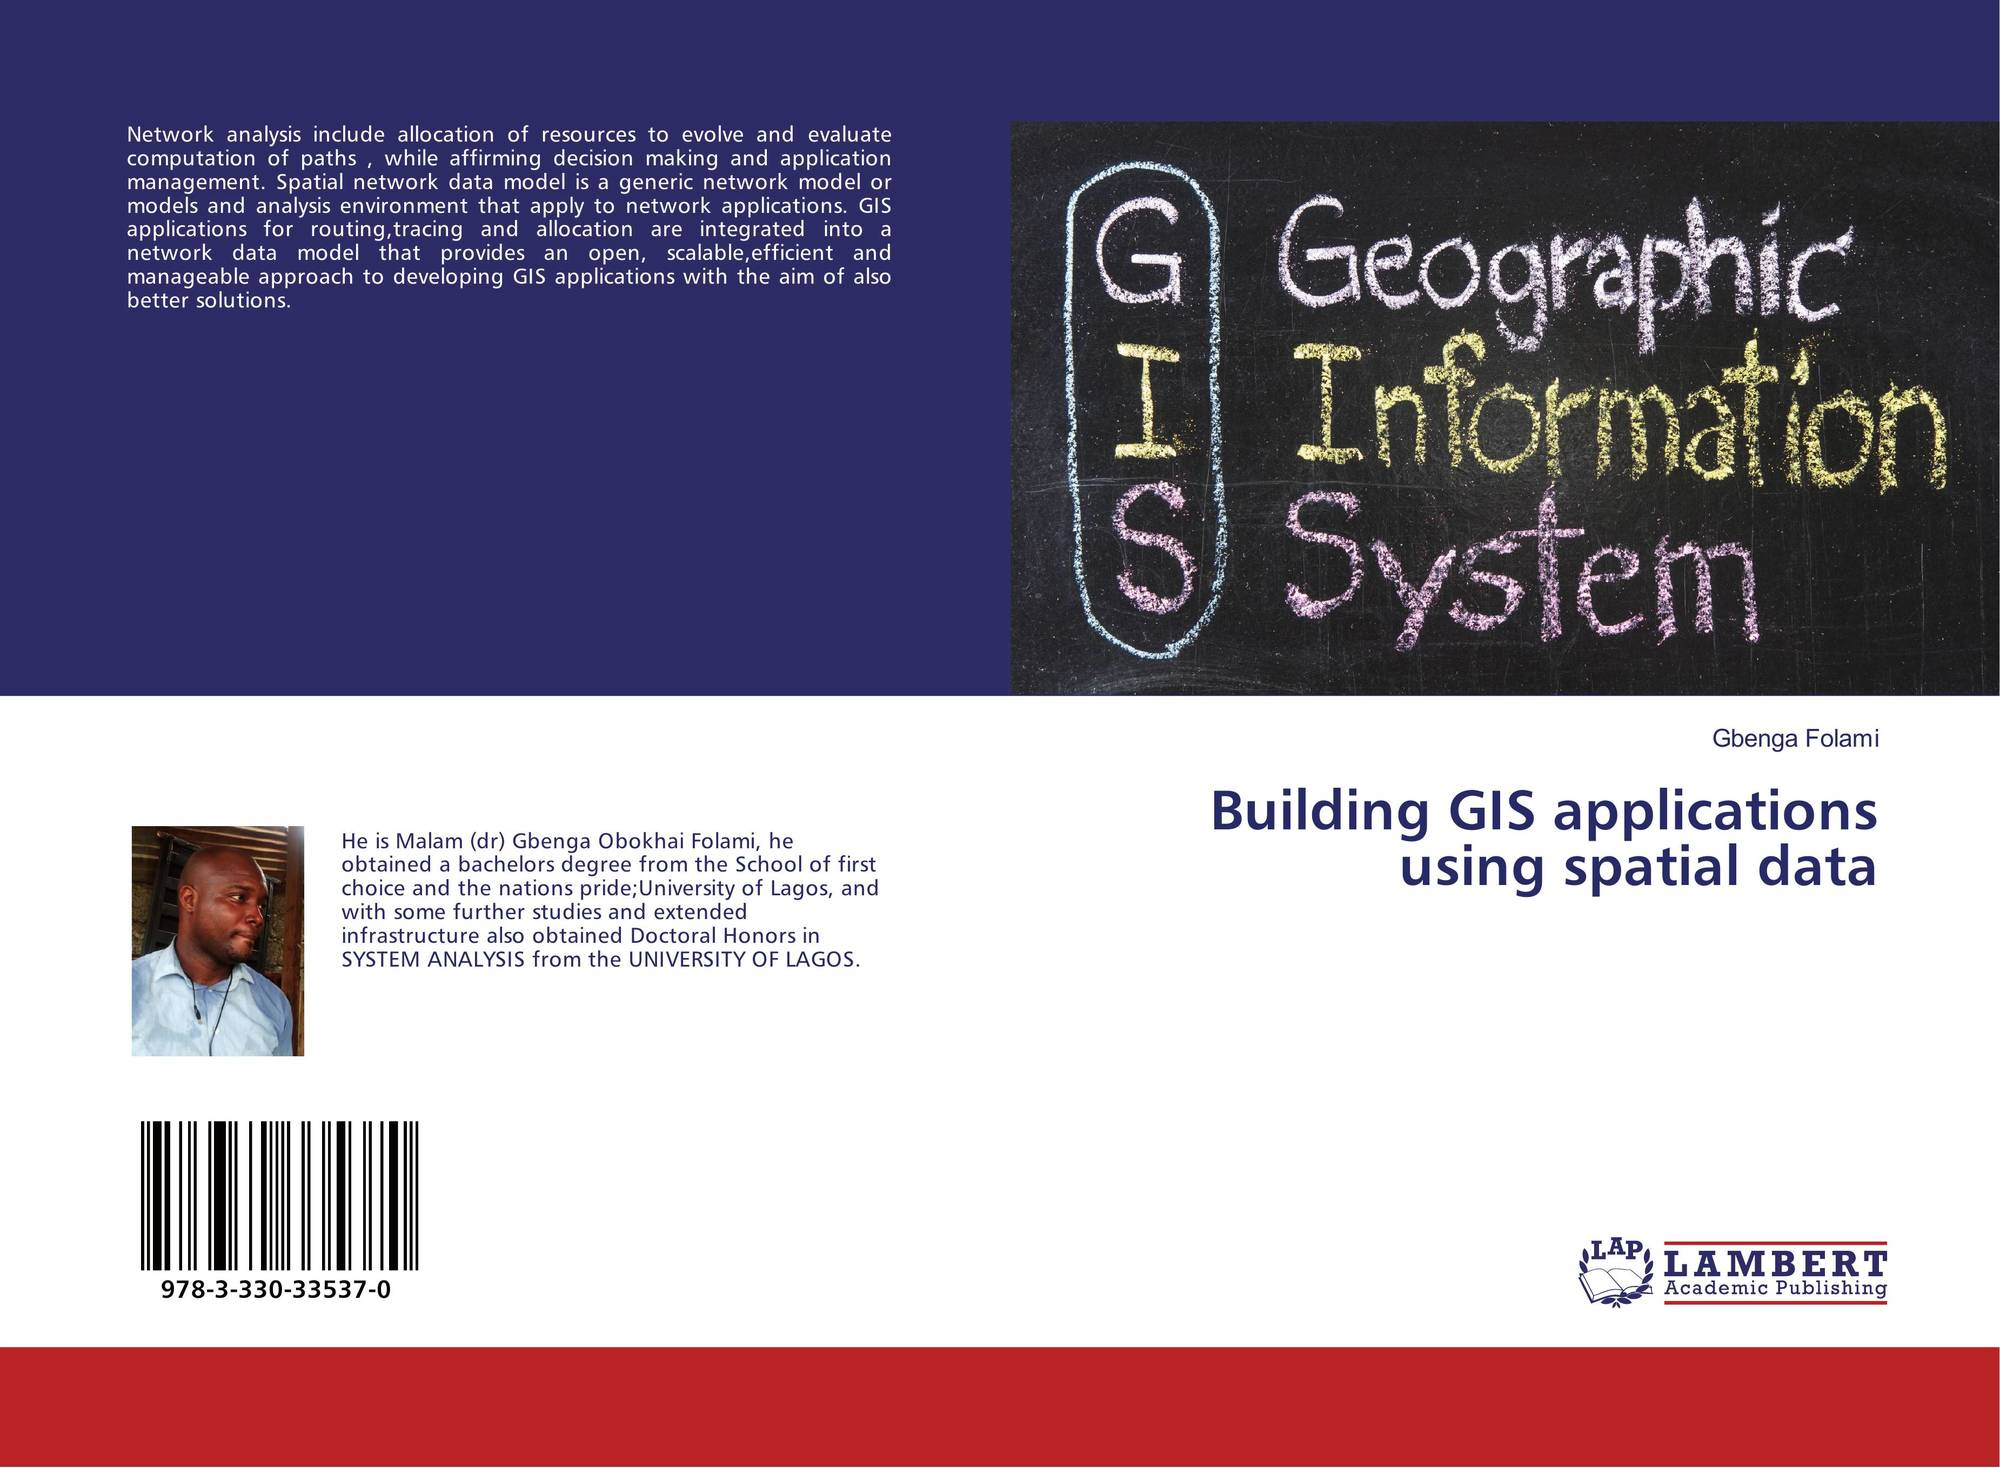 Building GIS applications using spatial data, 978-3-330